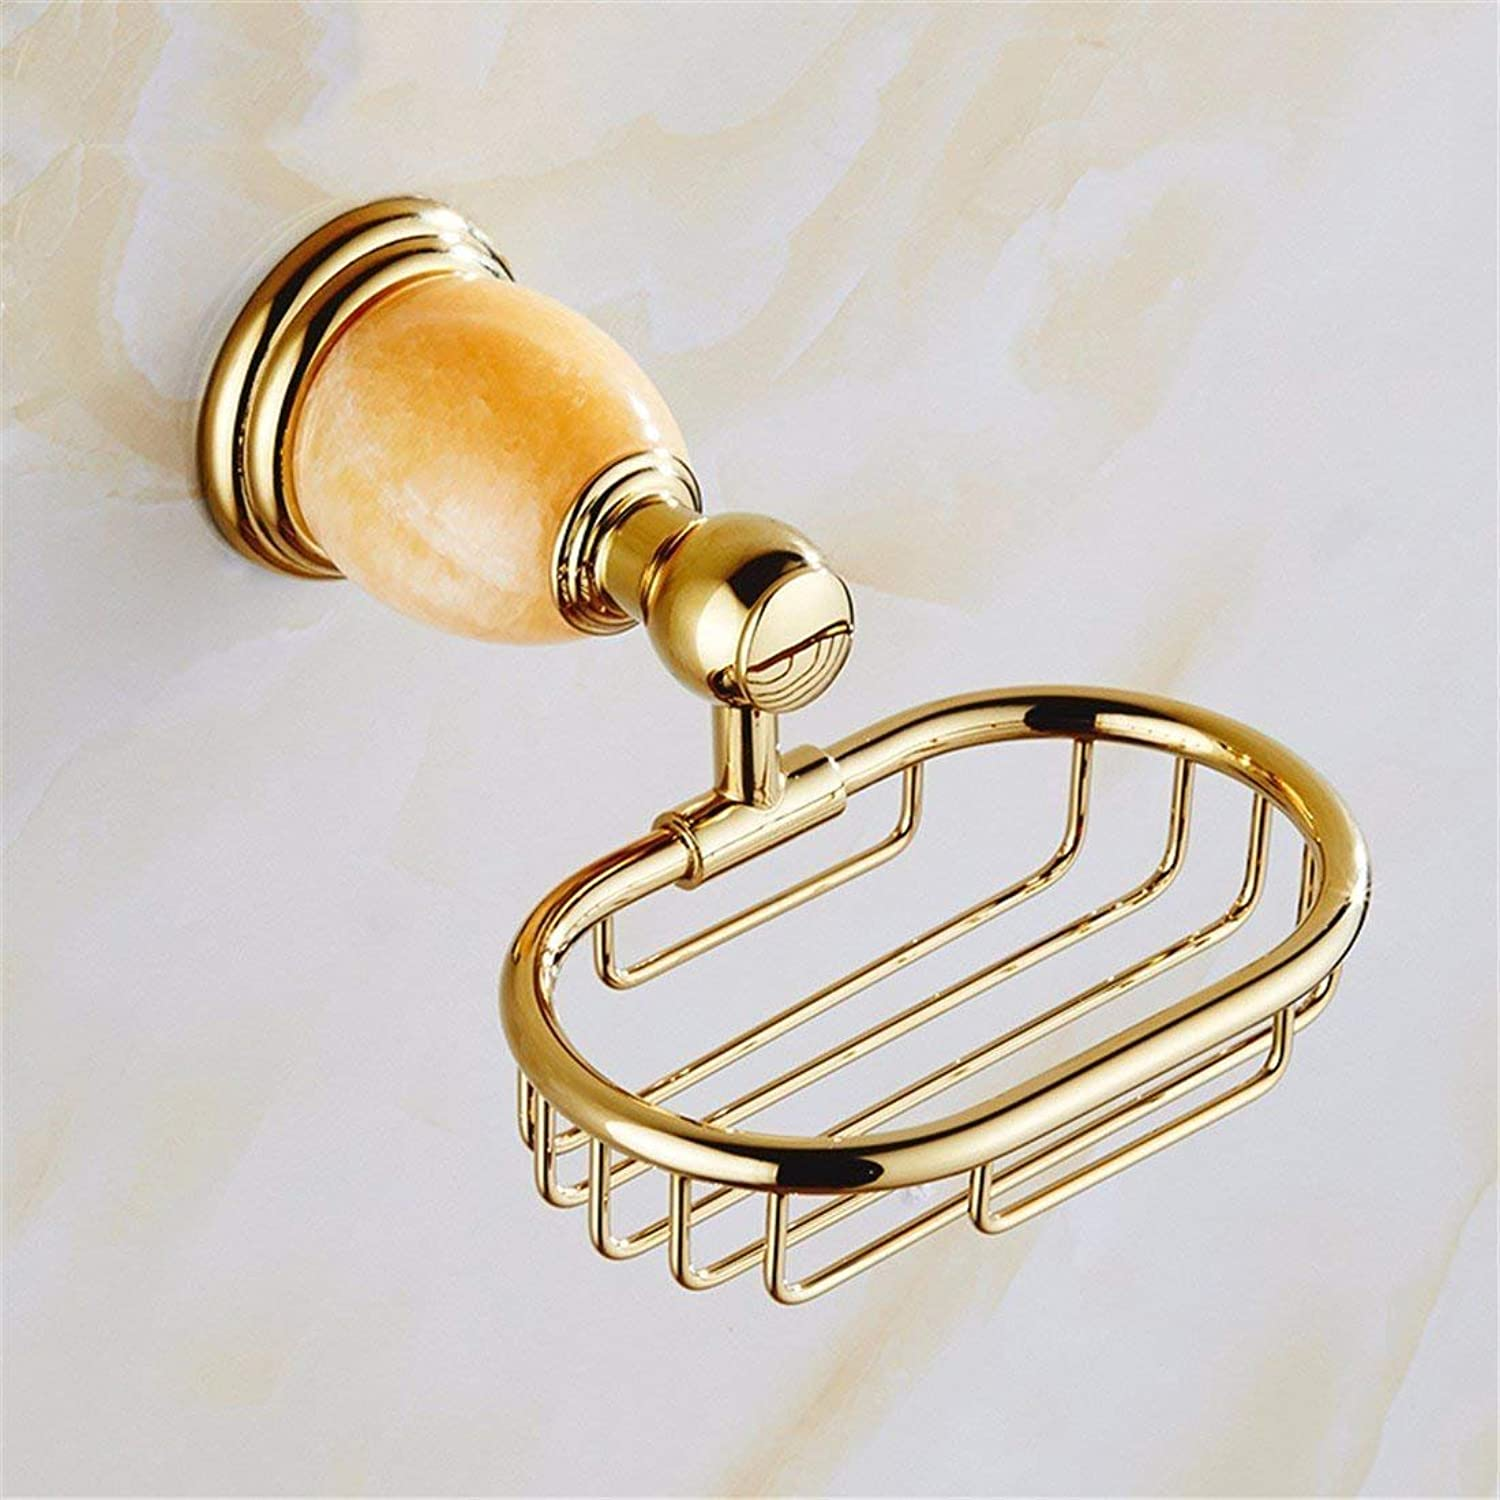 European Copper golden Yellow Jade Costume Accessories and Bathroom Door-Towels in Brushing The Teeth,Shopping Cart soap